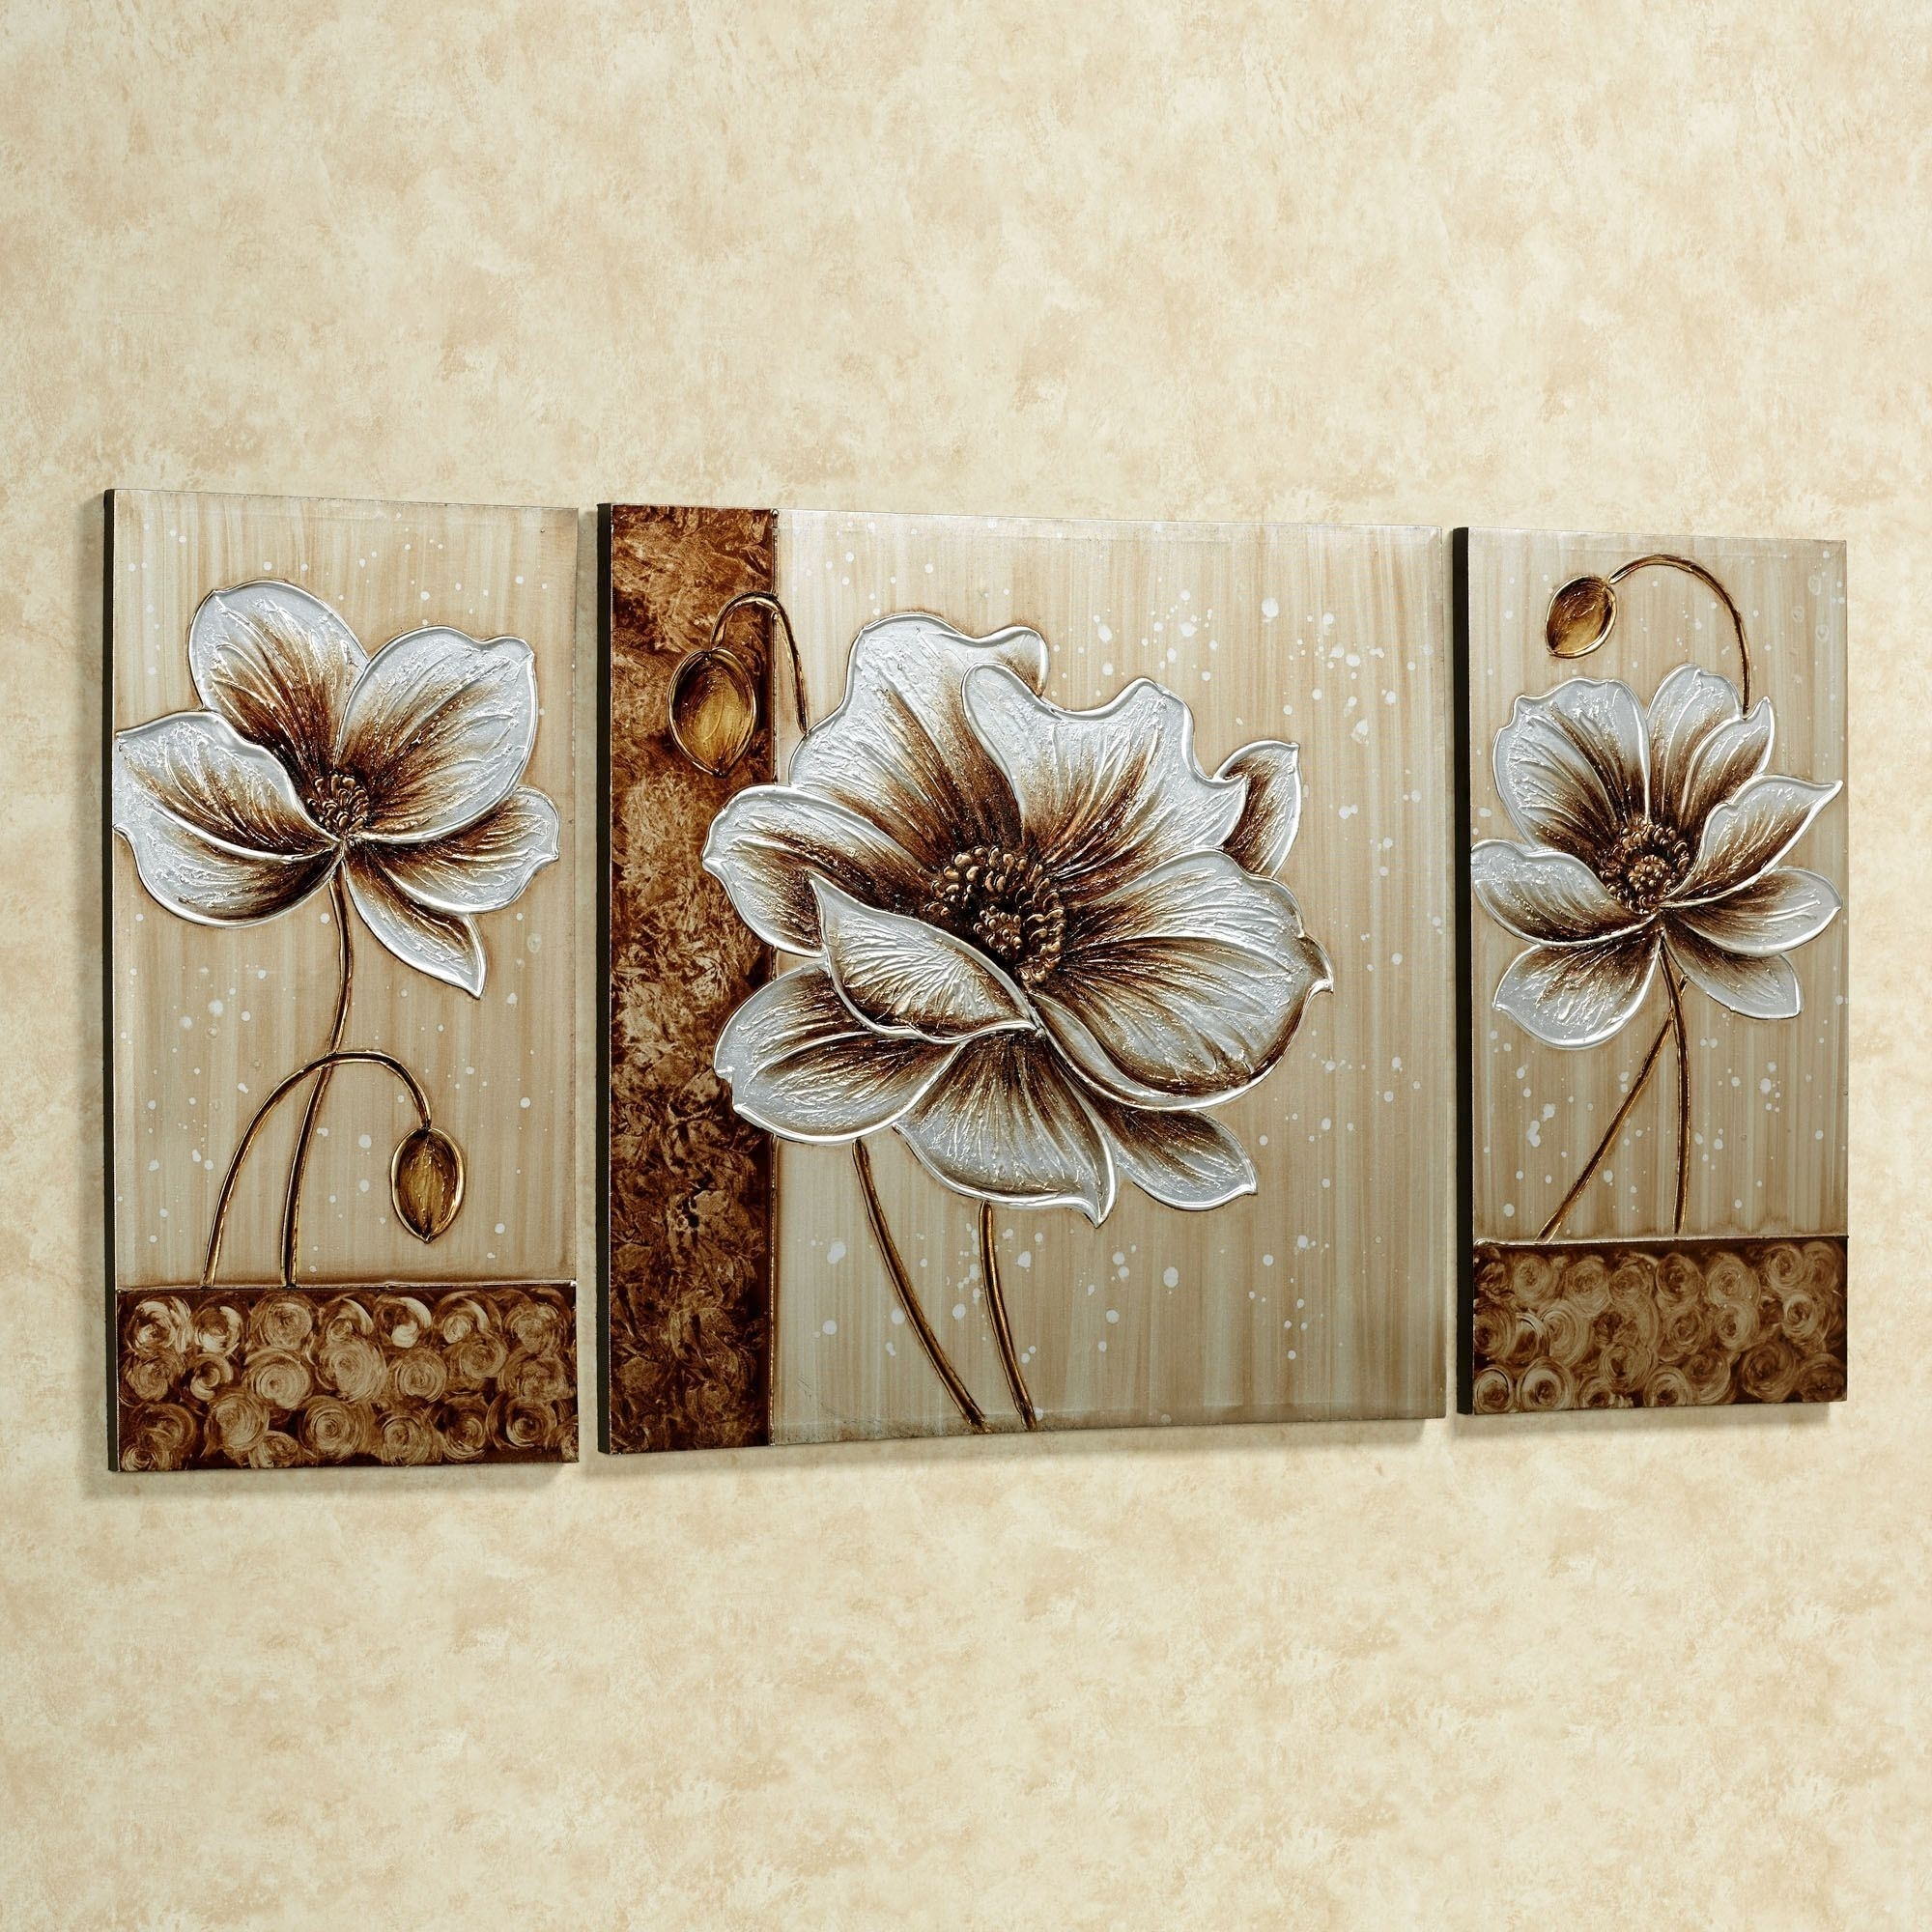 Subtle Elegance Floral Canvas Wall Art Set Intended For Current Wall Art Canvas (Gallery 6 of 15)